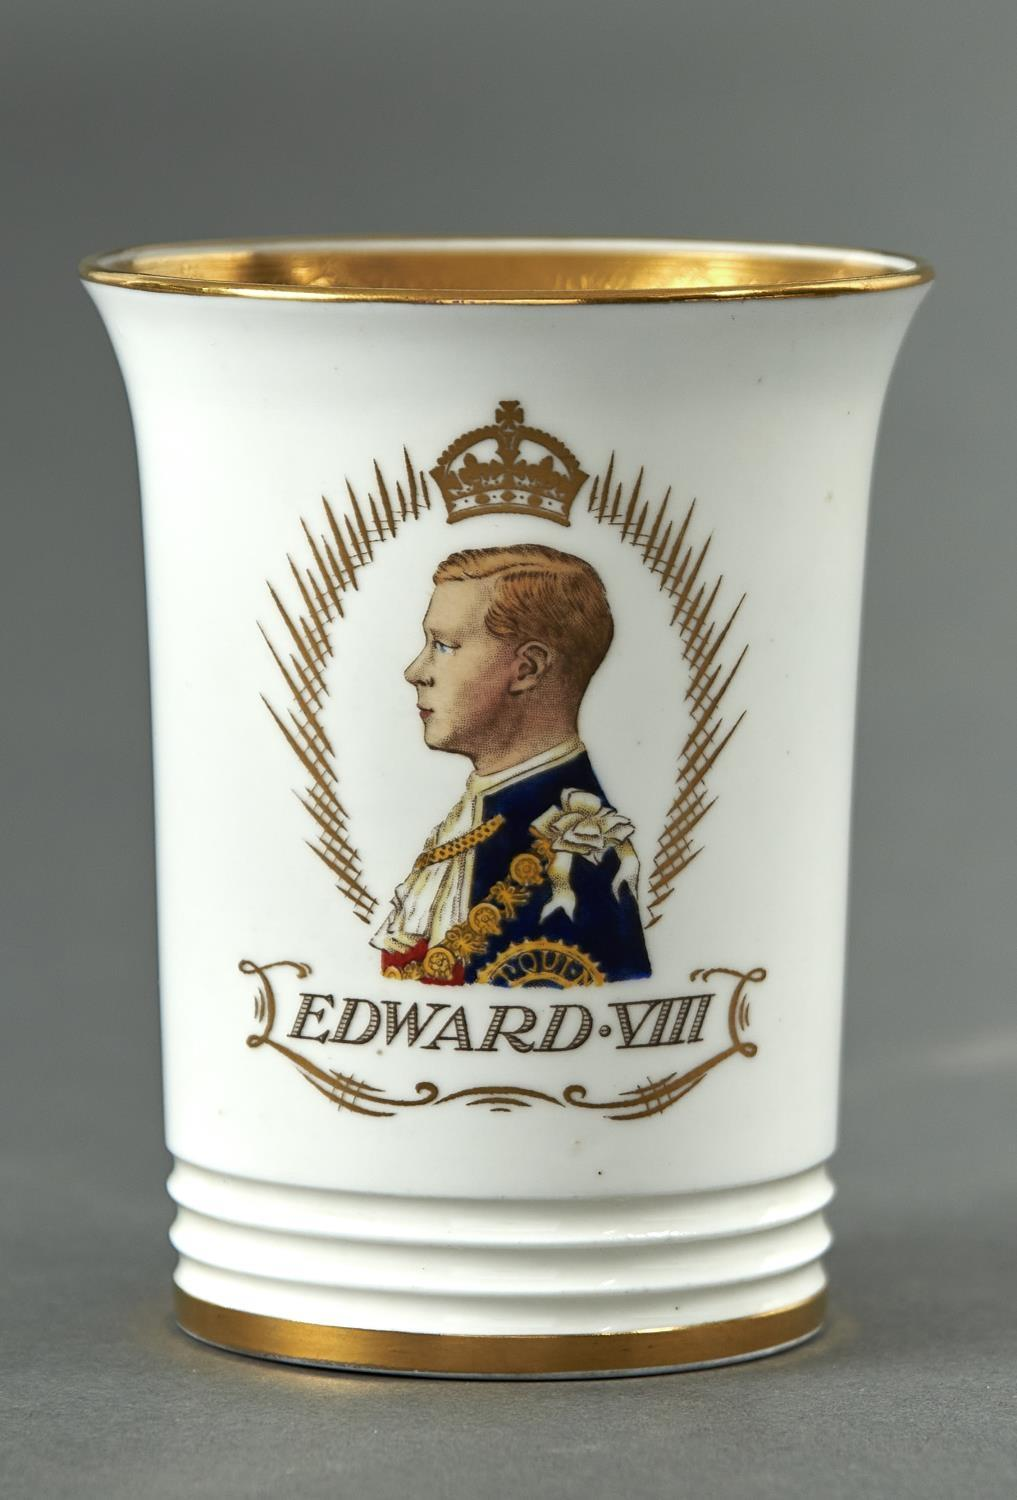 EDWARD VIII. AN ART DECO MINTON BONE CHINA COMMEMORATIVE BEAKER, 1937, 10.5CM H, GILT PRINTED MARK